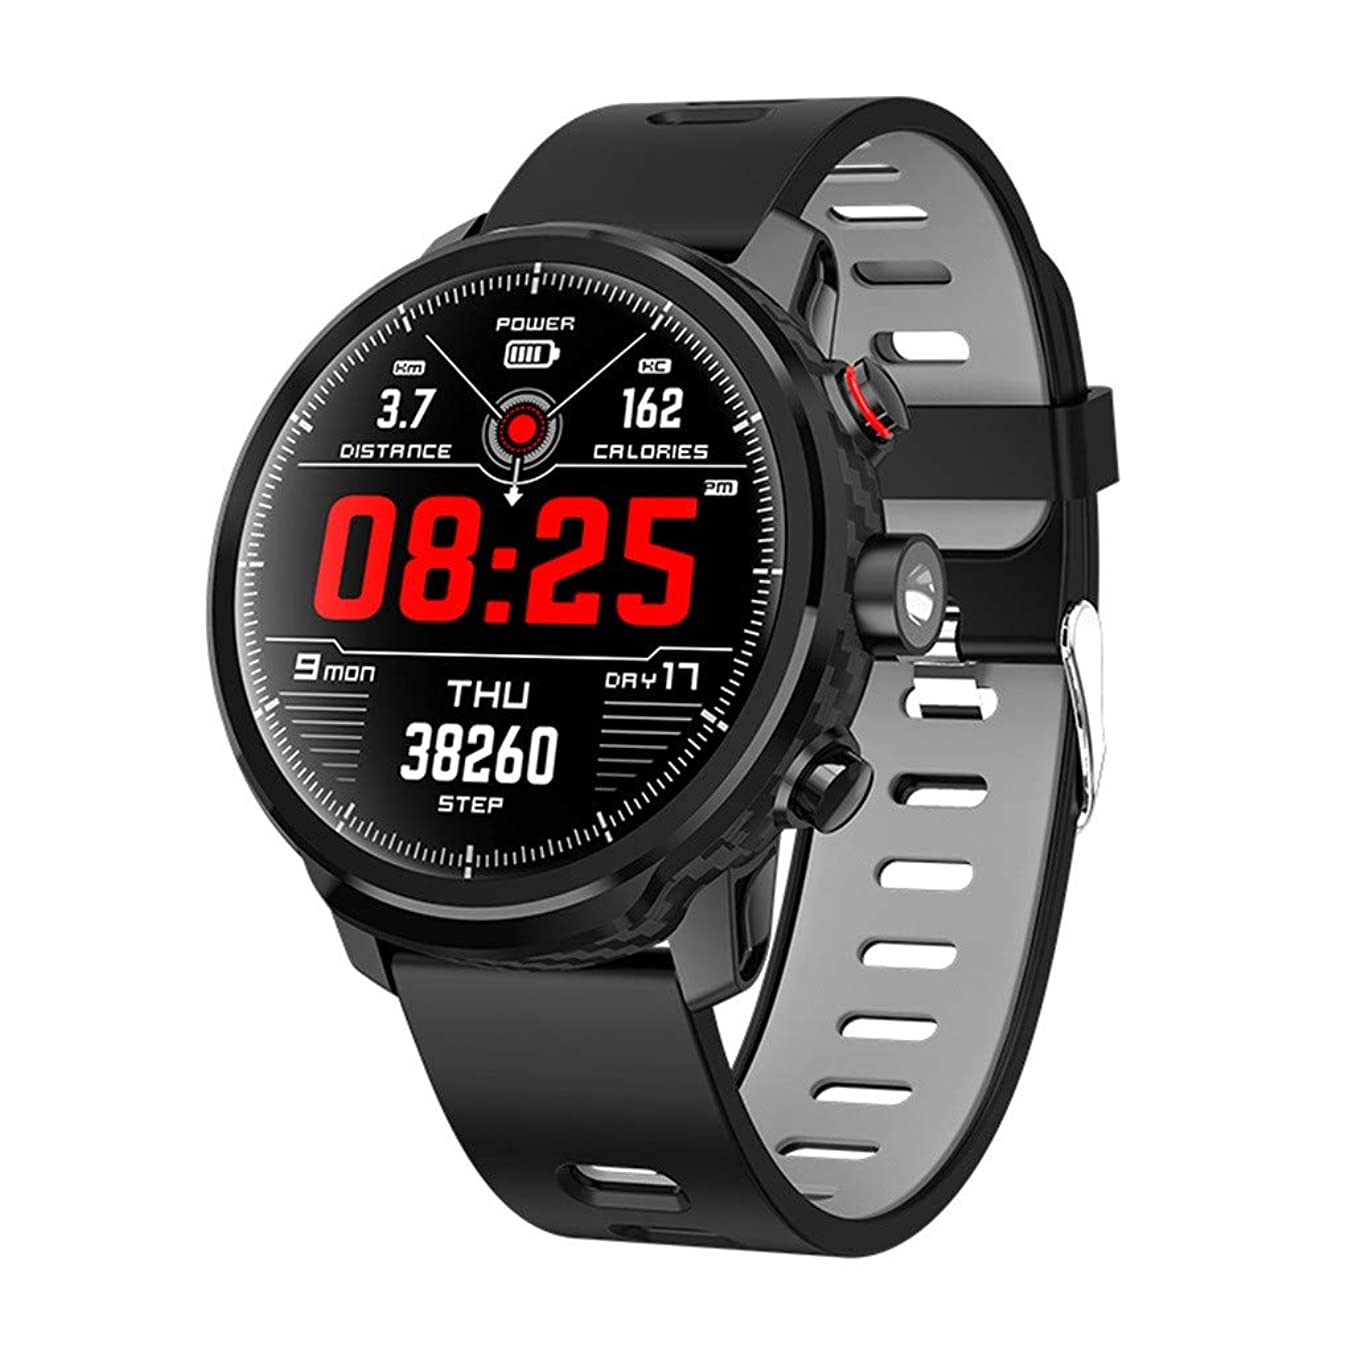 Sandistore Sandistore Smart Watch for Android/iOS Phones,IP68 Waterproof; 1.3 inch Round Screen; Full Touch Screen ; Anti-Fingerprints; 7 Working Days; Dynamic Heart Rate